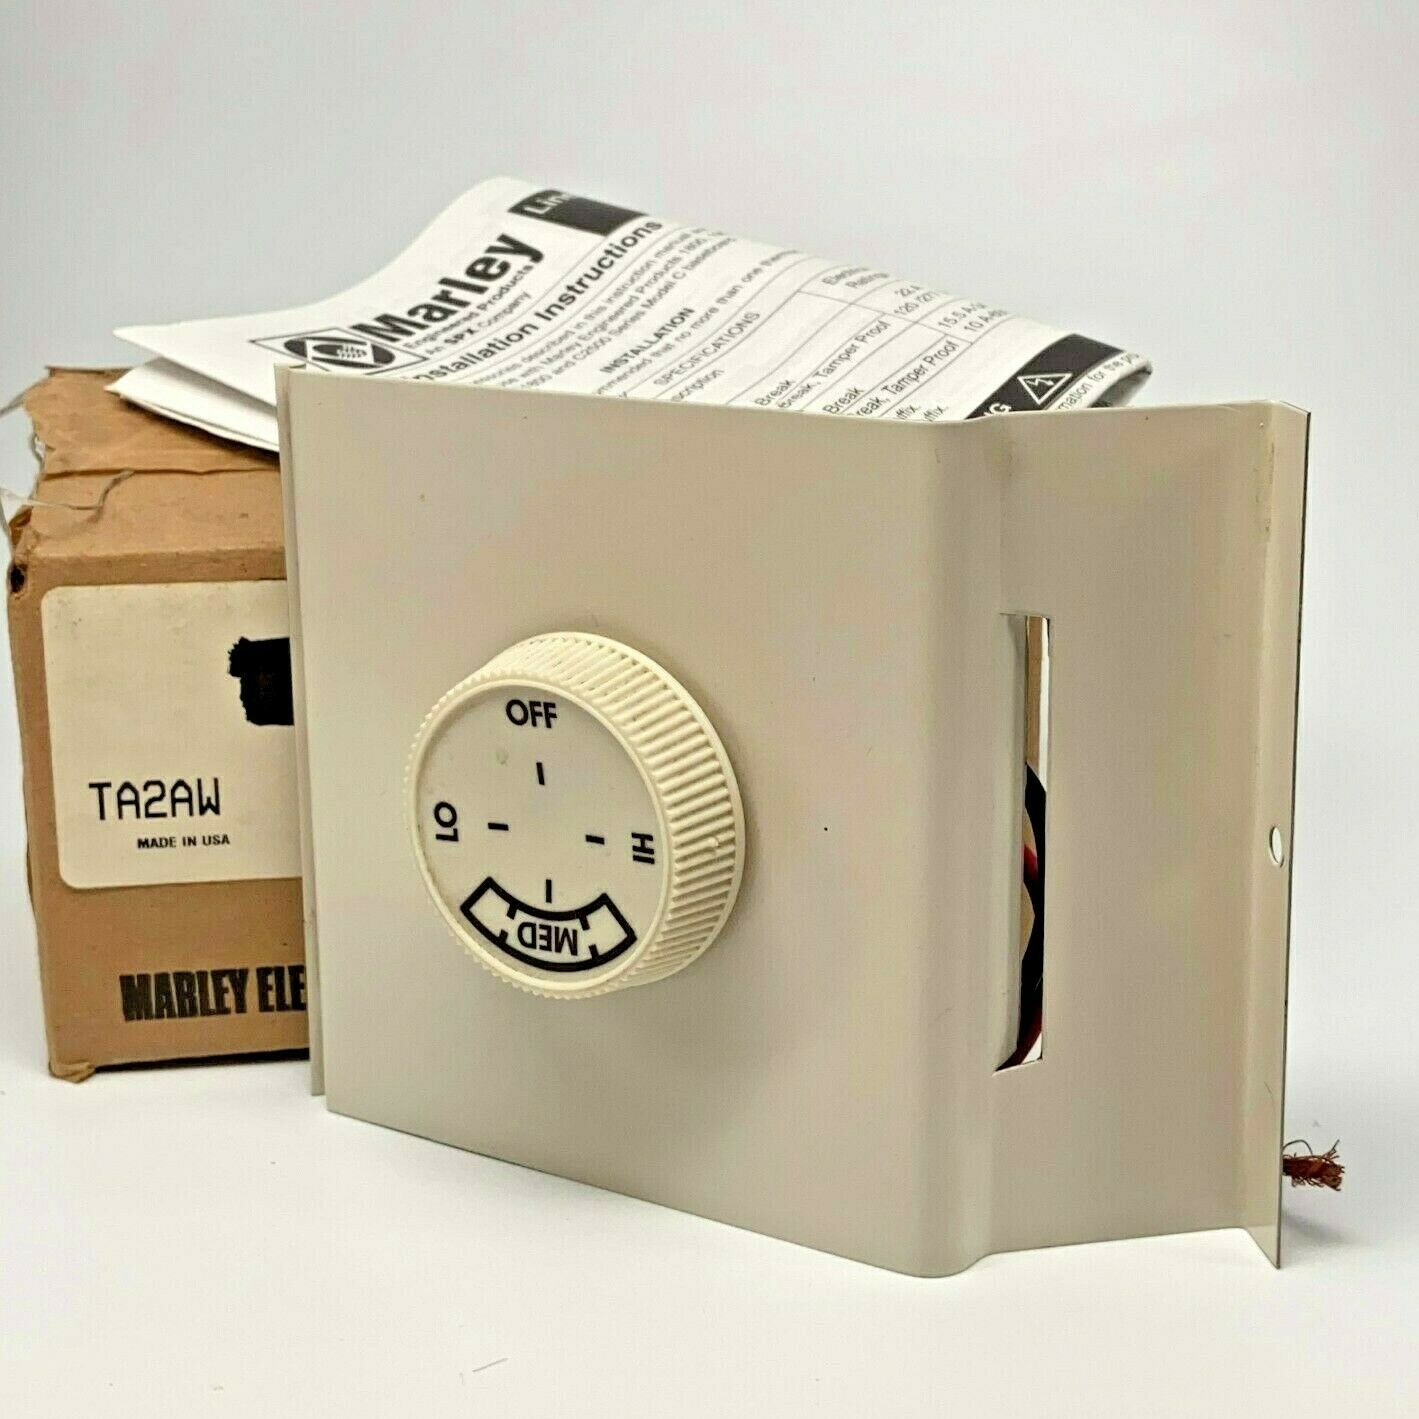 Marley TA2AW Qmark Electric Baseboard Heater Accessory Doubl